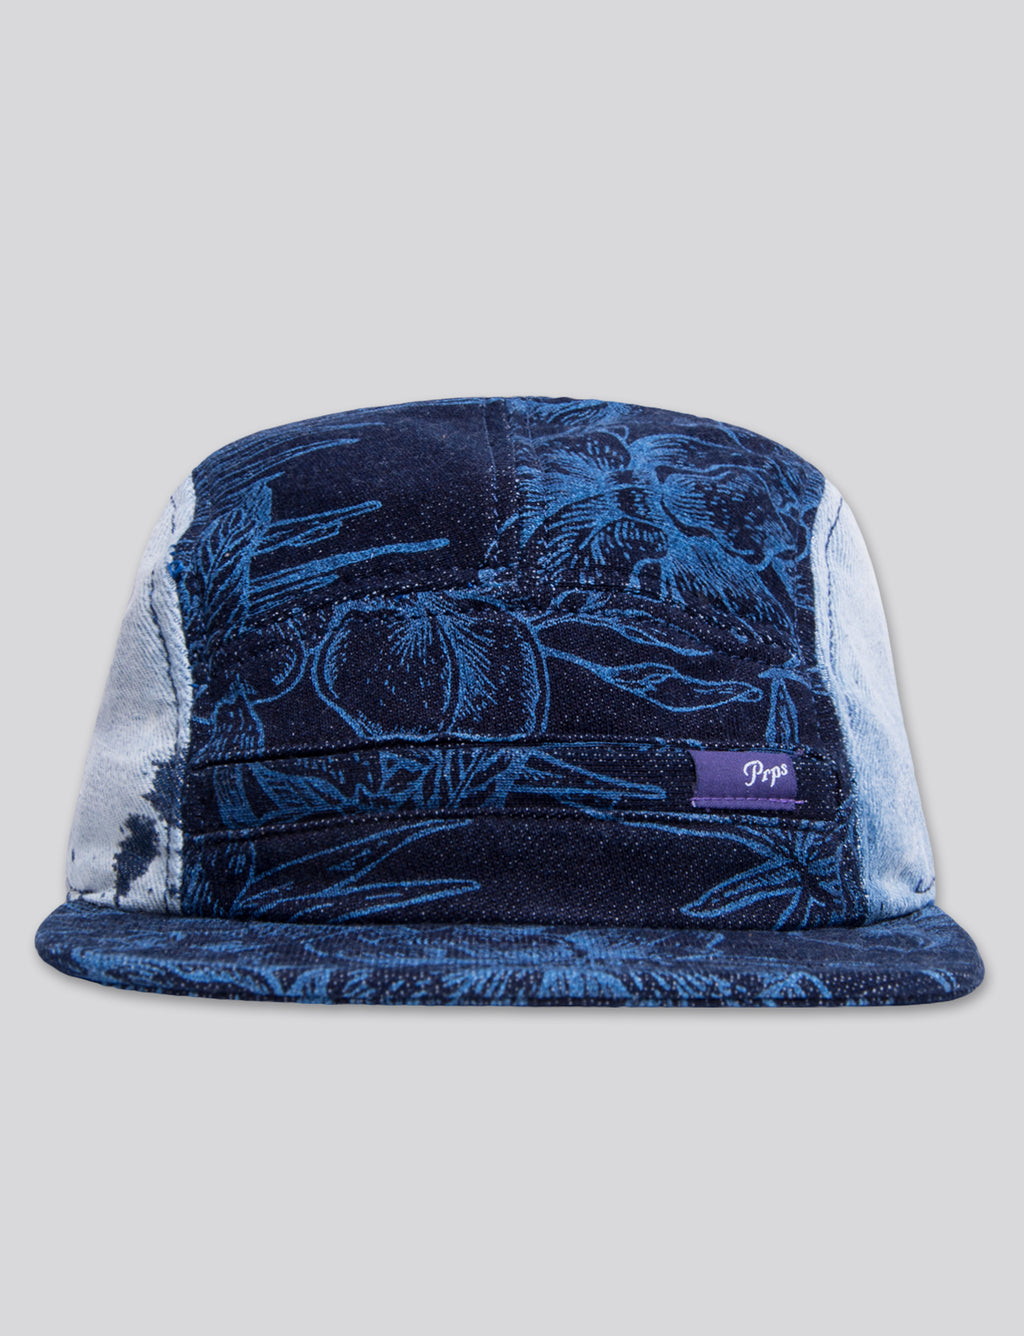 Prps - #17 Bleached Denim 5 Panel Hat - Hat - Prps